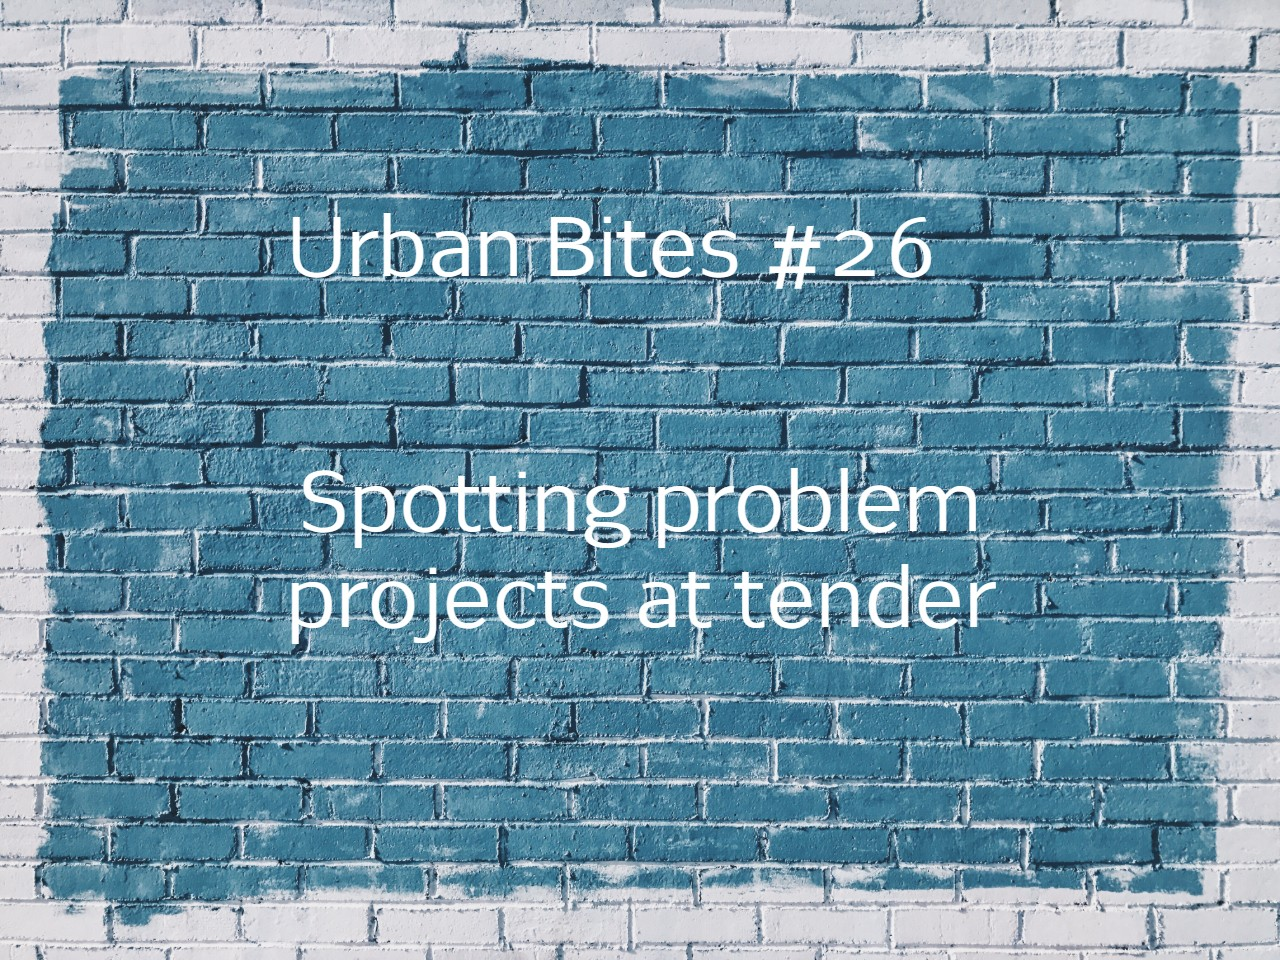 Urban Bites #26 - Spotting problem projects at tender